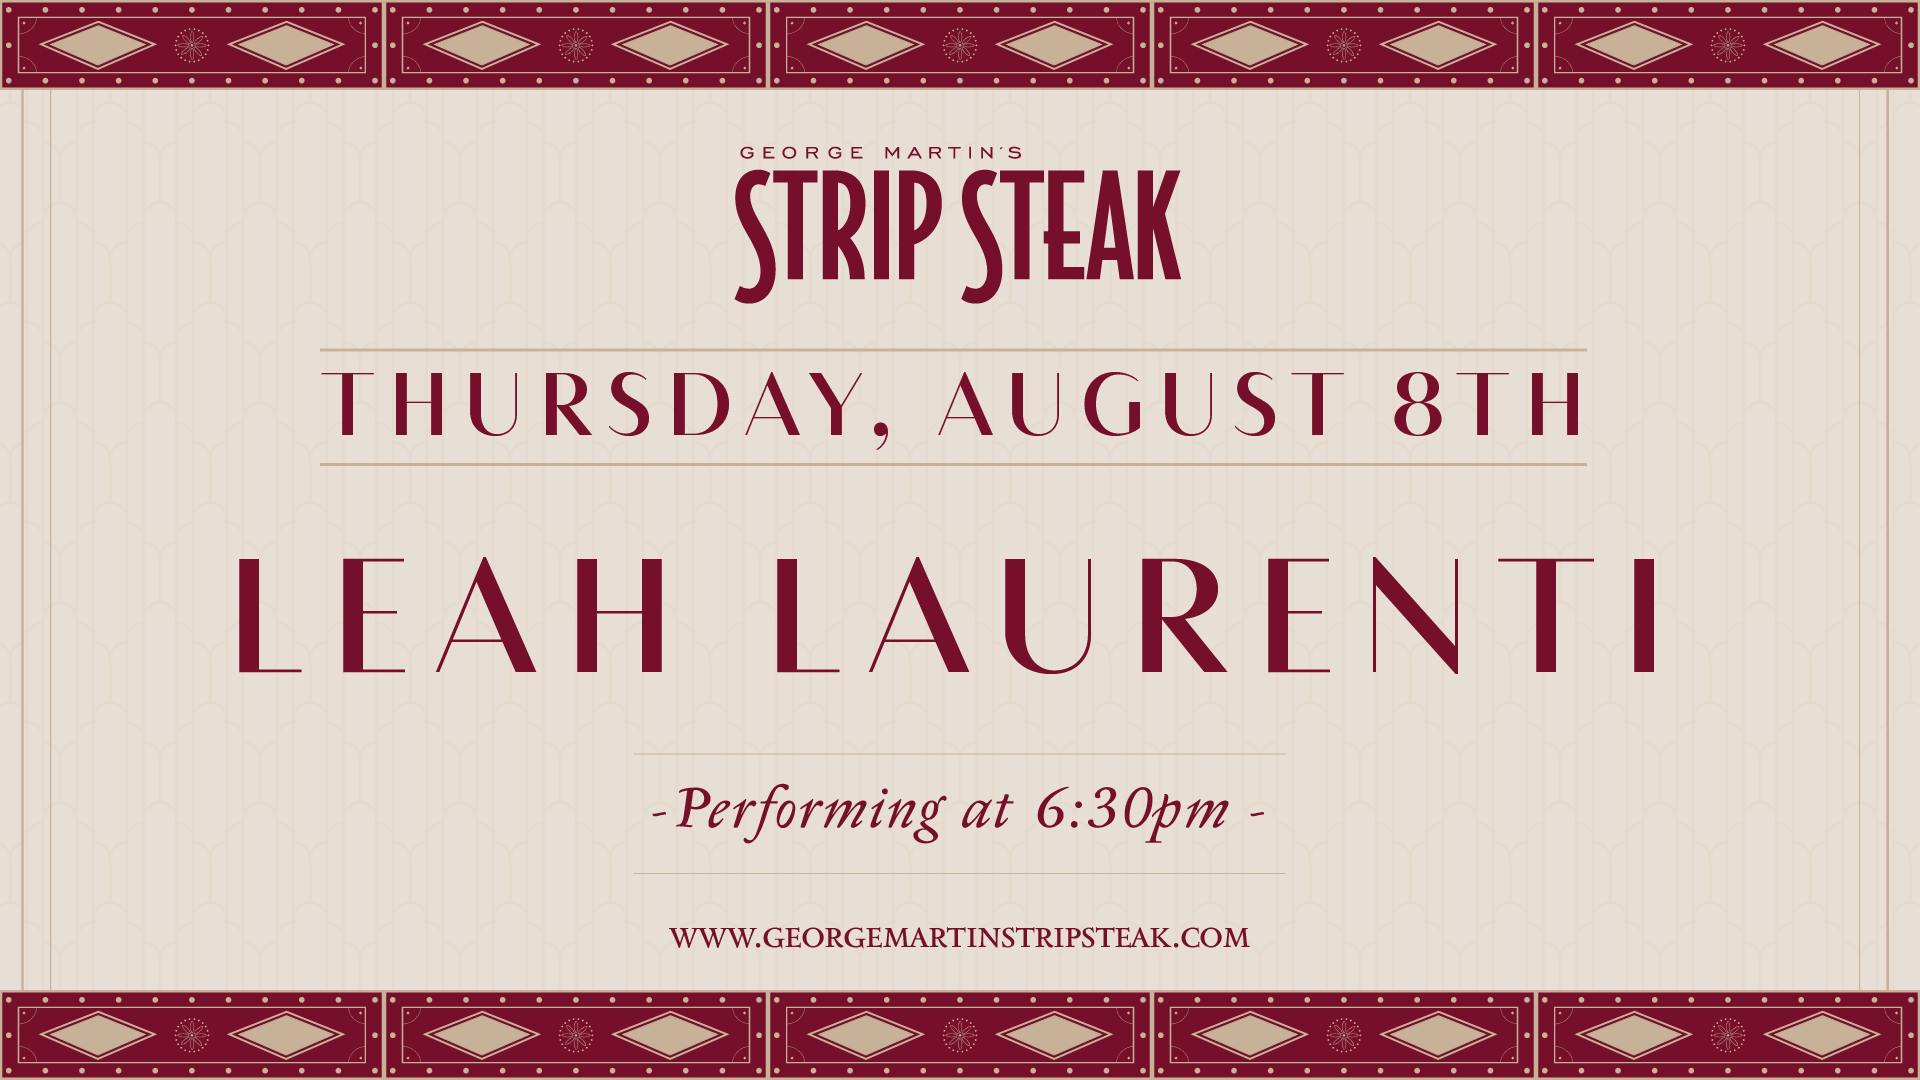 Flyer for live music with Leah Laurenti on August 8th at 6:30pm